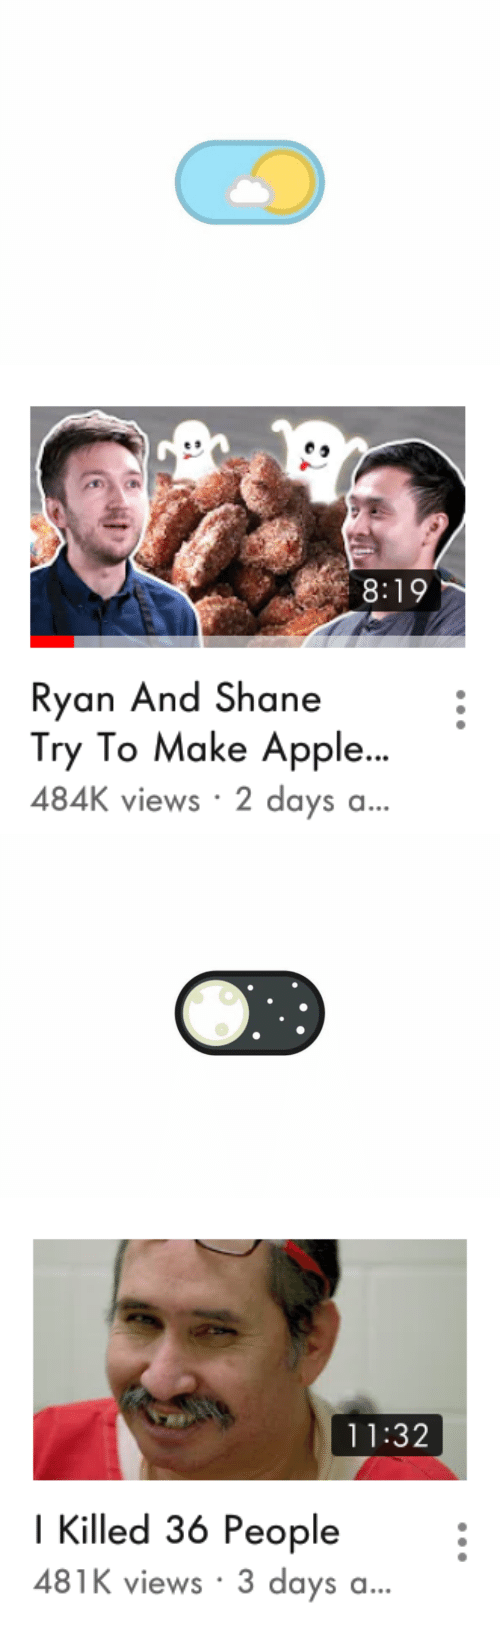 Apple, Shane, and Make: 8:19  Ryan And Shane  Try To Make Apple..  484K views 2 days a...   11:32  I Killed 36 People  481K views 3 days a...